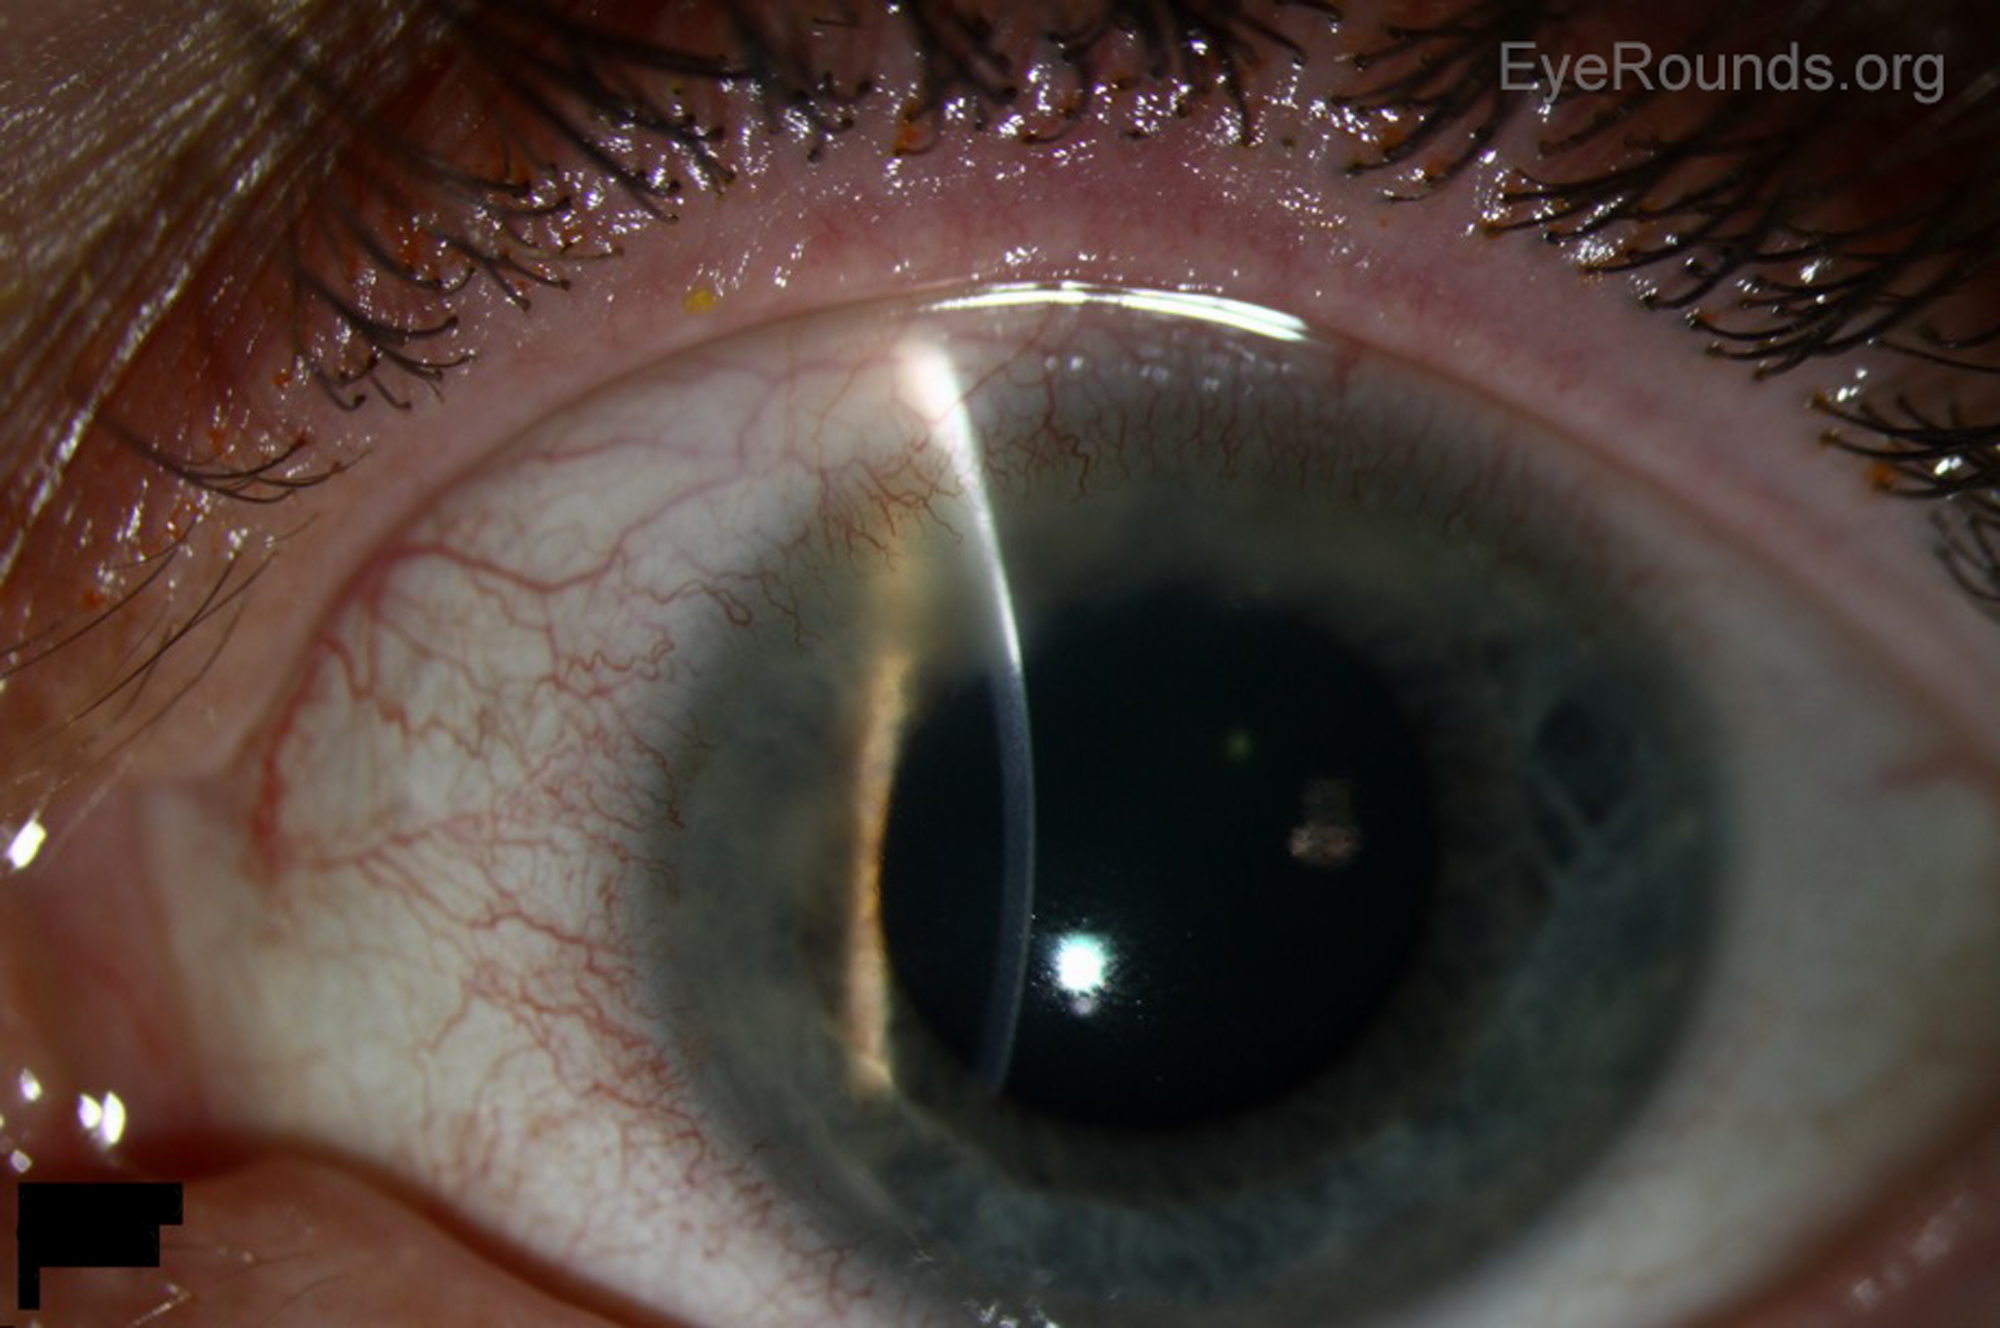 Small, peripheral corneal ulcers can be treated initially with second generation FQs. Make sure to have the patient follow up with an eye doctor.